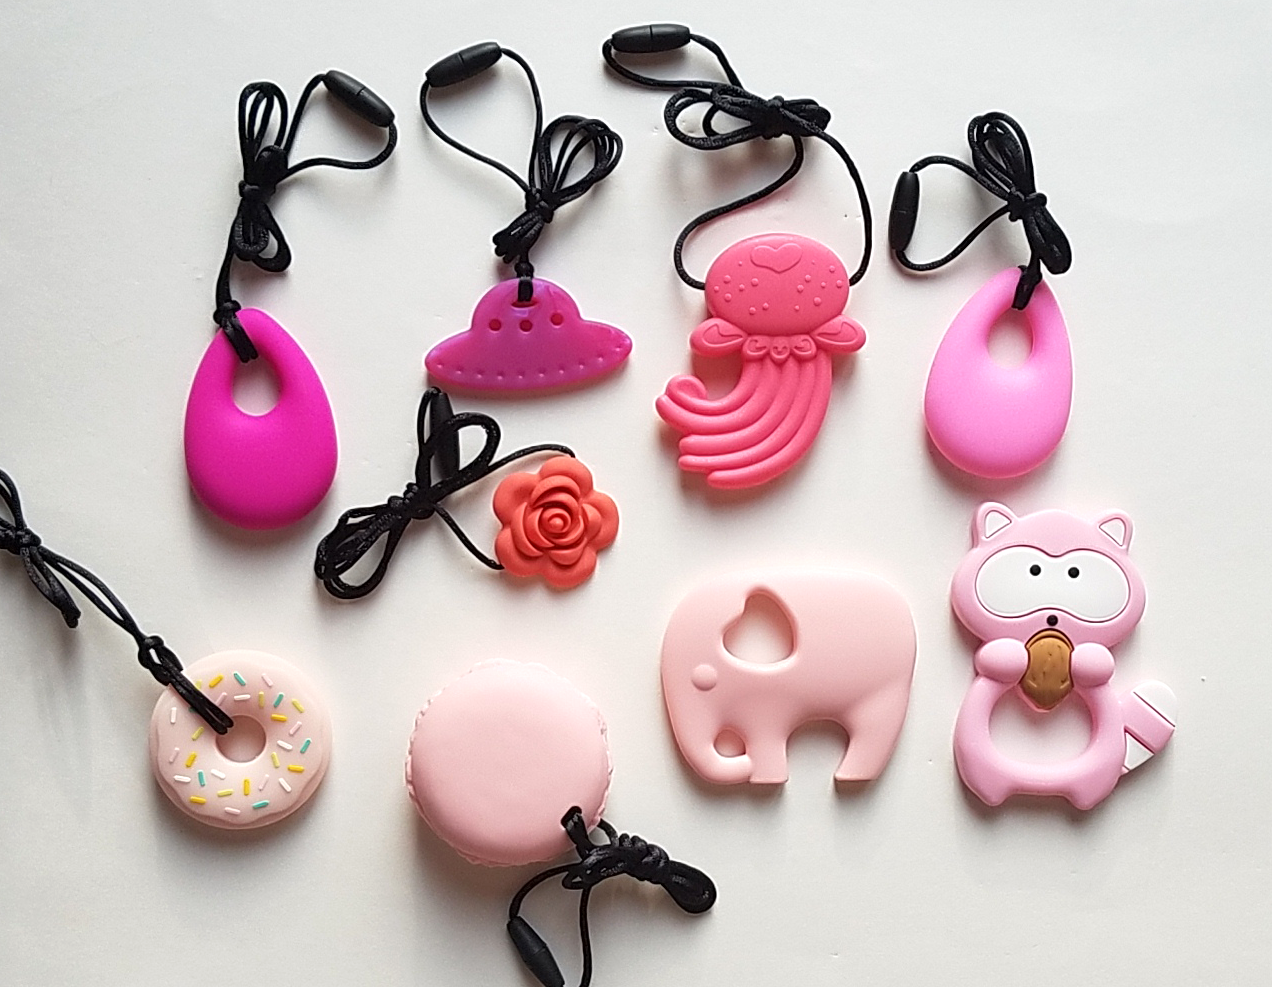 Clockwise from top left: Fuschia droplet, ruby UFO, pink jellyfish, pink droplet, pink raccoon, pink elephant, pink macaron, pink donut, coral blossom.